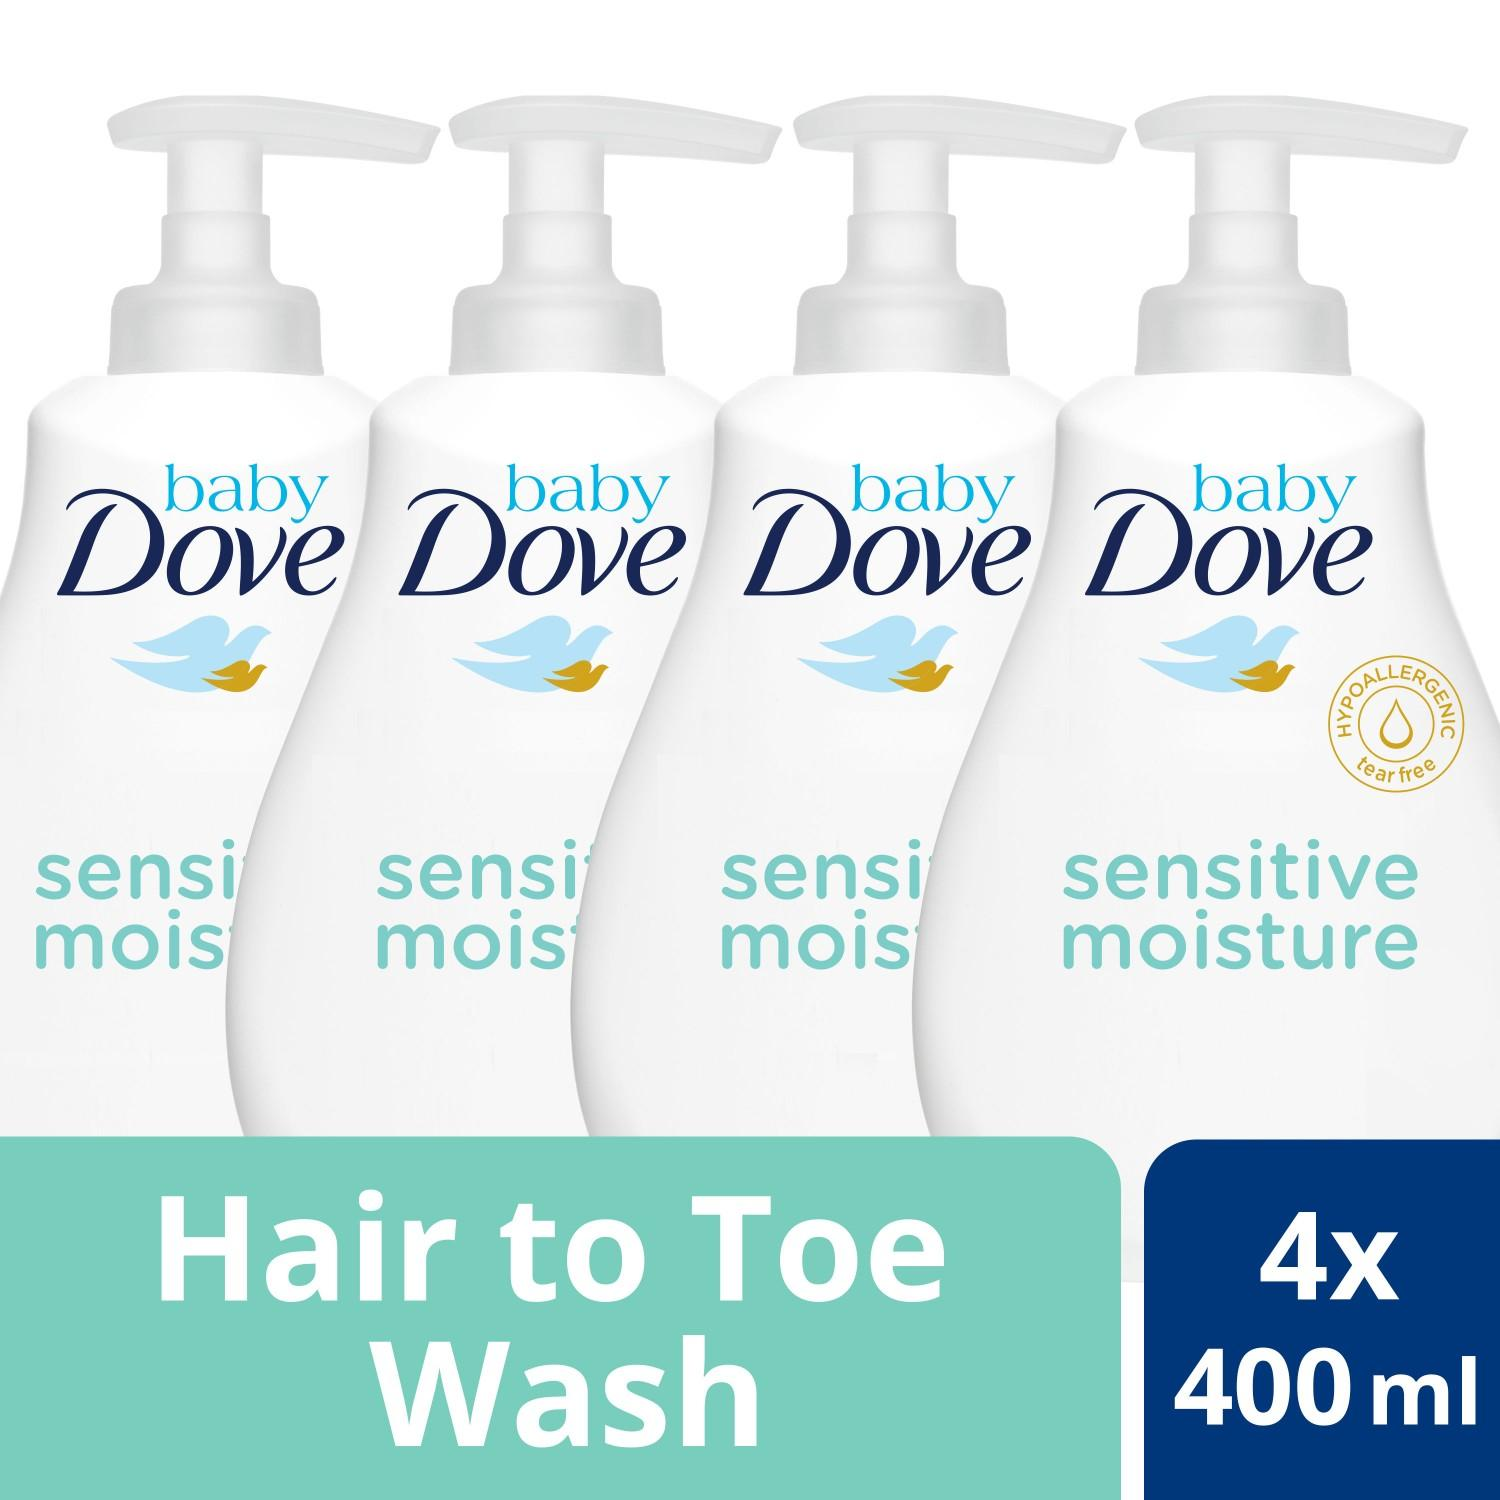 Baby Wash For Sale Body Online Brands Prices Reviews Pigeon 2in1 Refill 600ml Dove Hair To Toe Sensitive Moisture 4x400ml P999 Bundle Pack